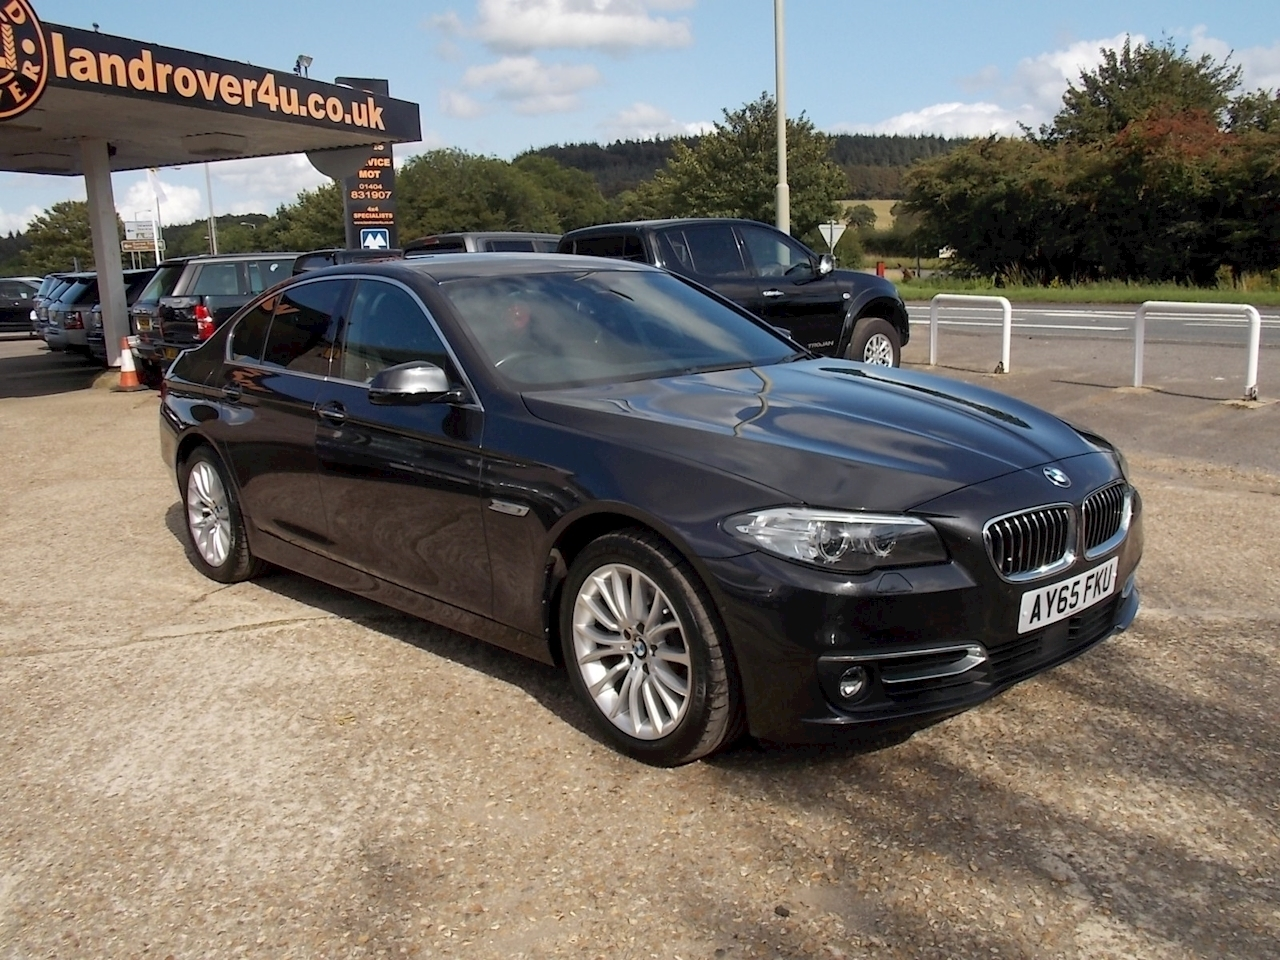 BMW 5 Series 520D Luxury Saloon 2.0 Automatic Diesel